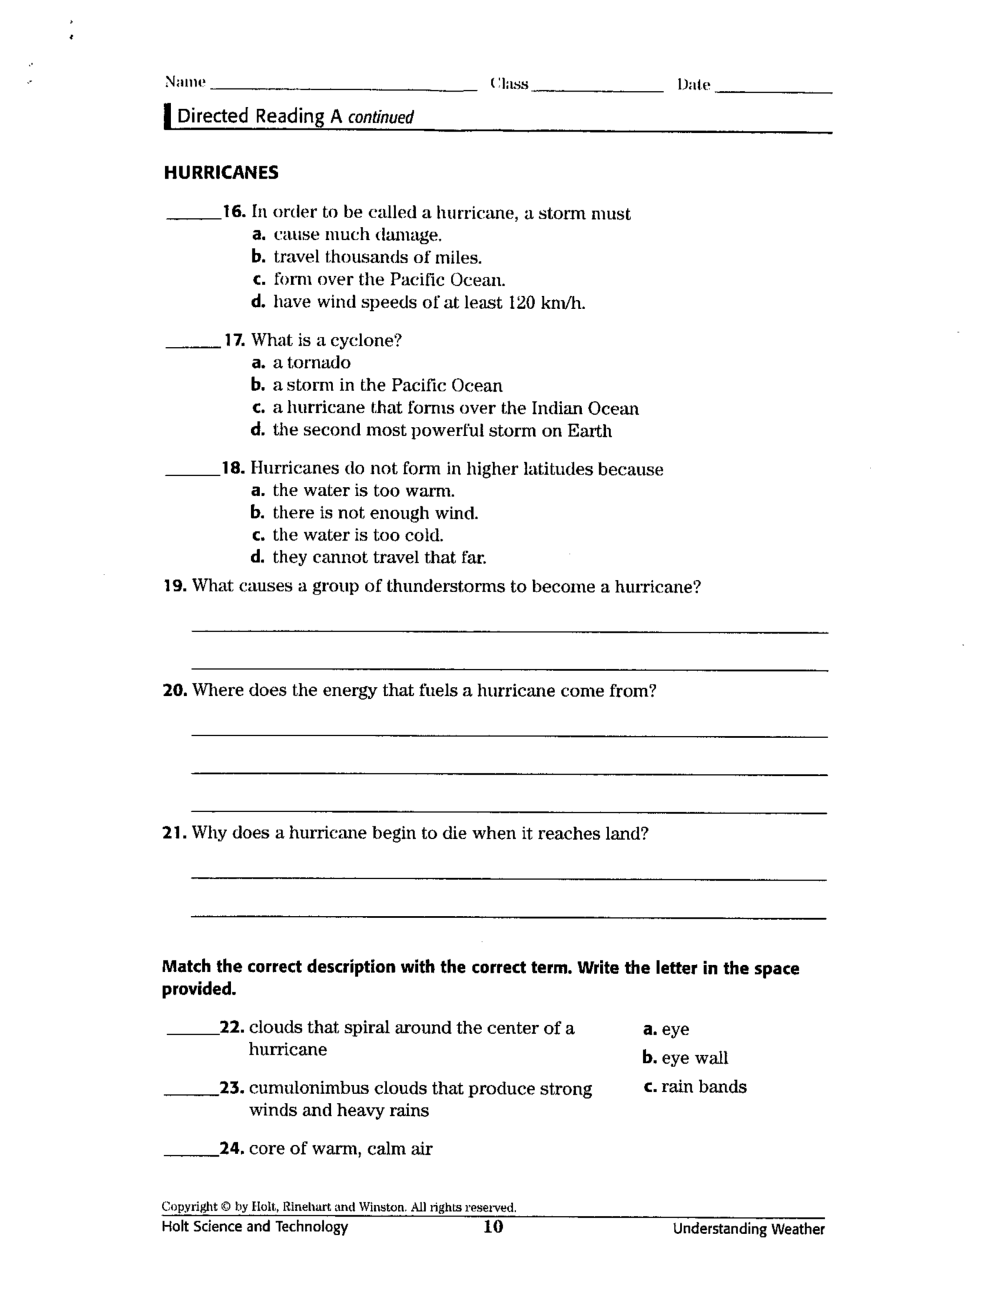 medium resolution of Severe Weather Safety Worksheets   Printable Worksheets and Activities for  Teachers